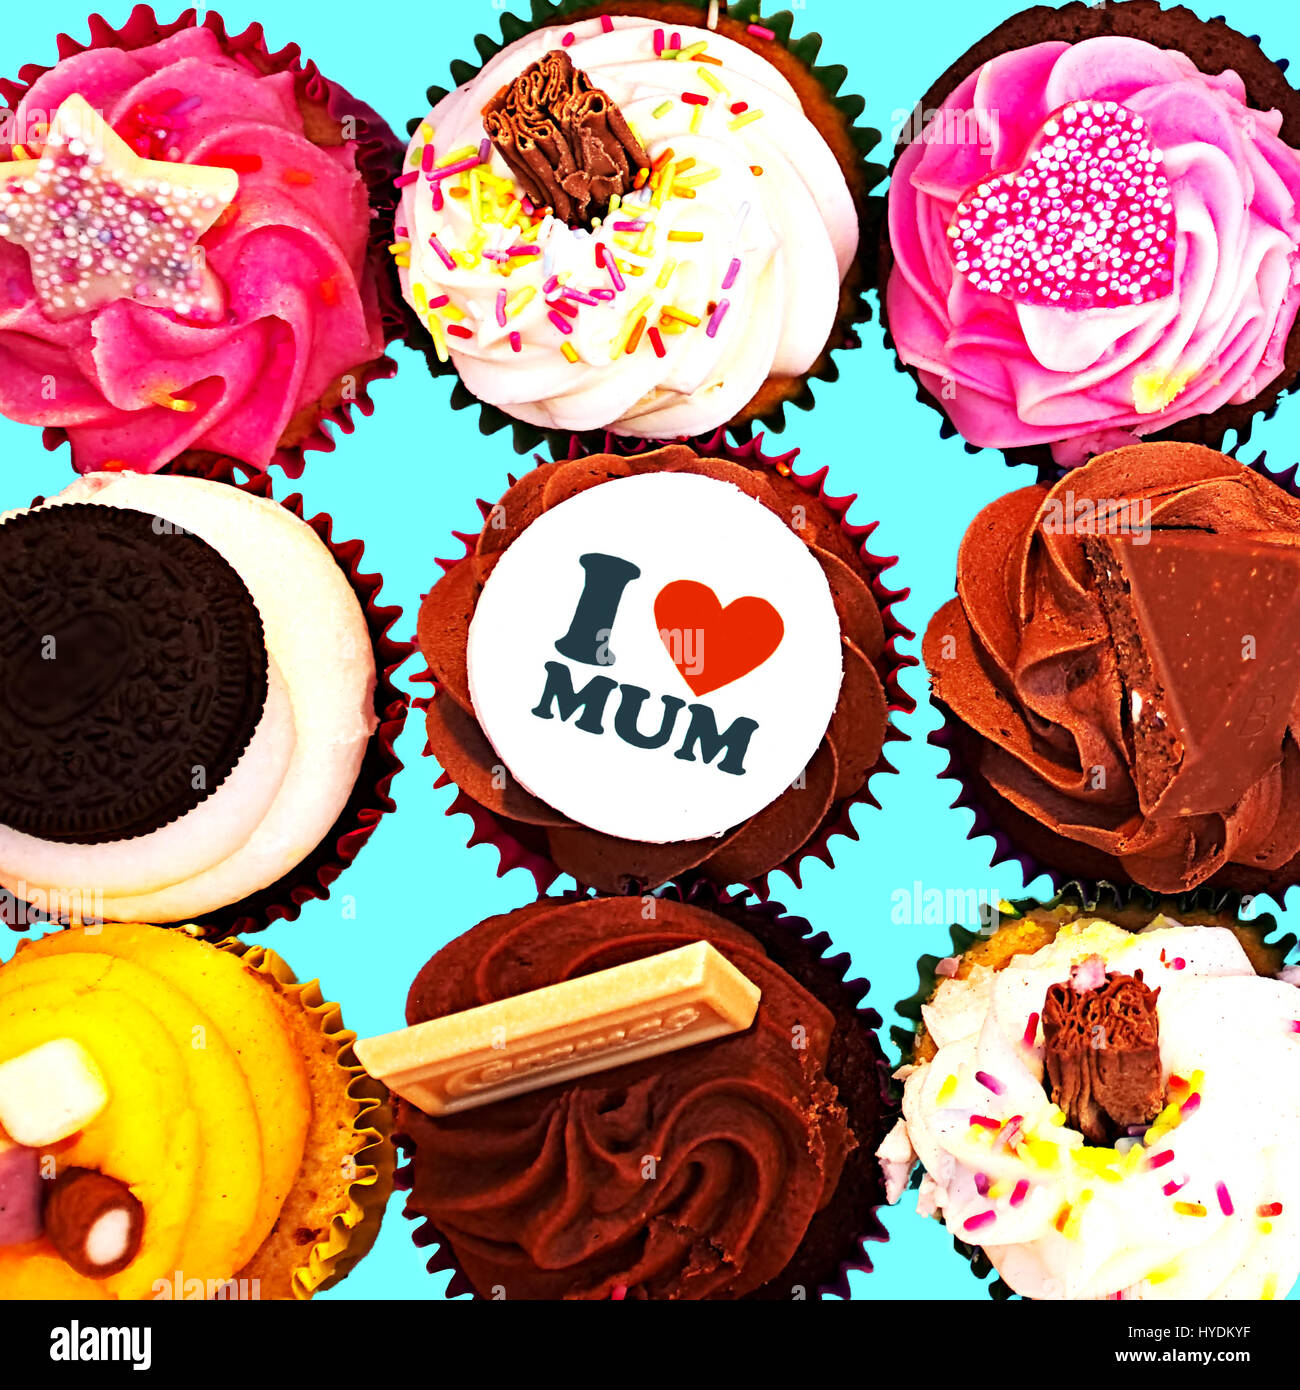 Cupcakes for mother day.Vibrant pastels in background. - Stock Image